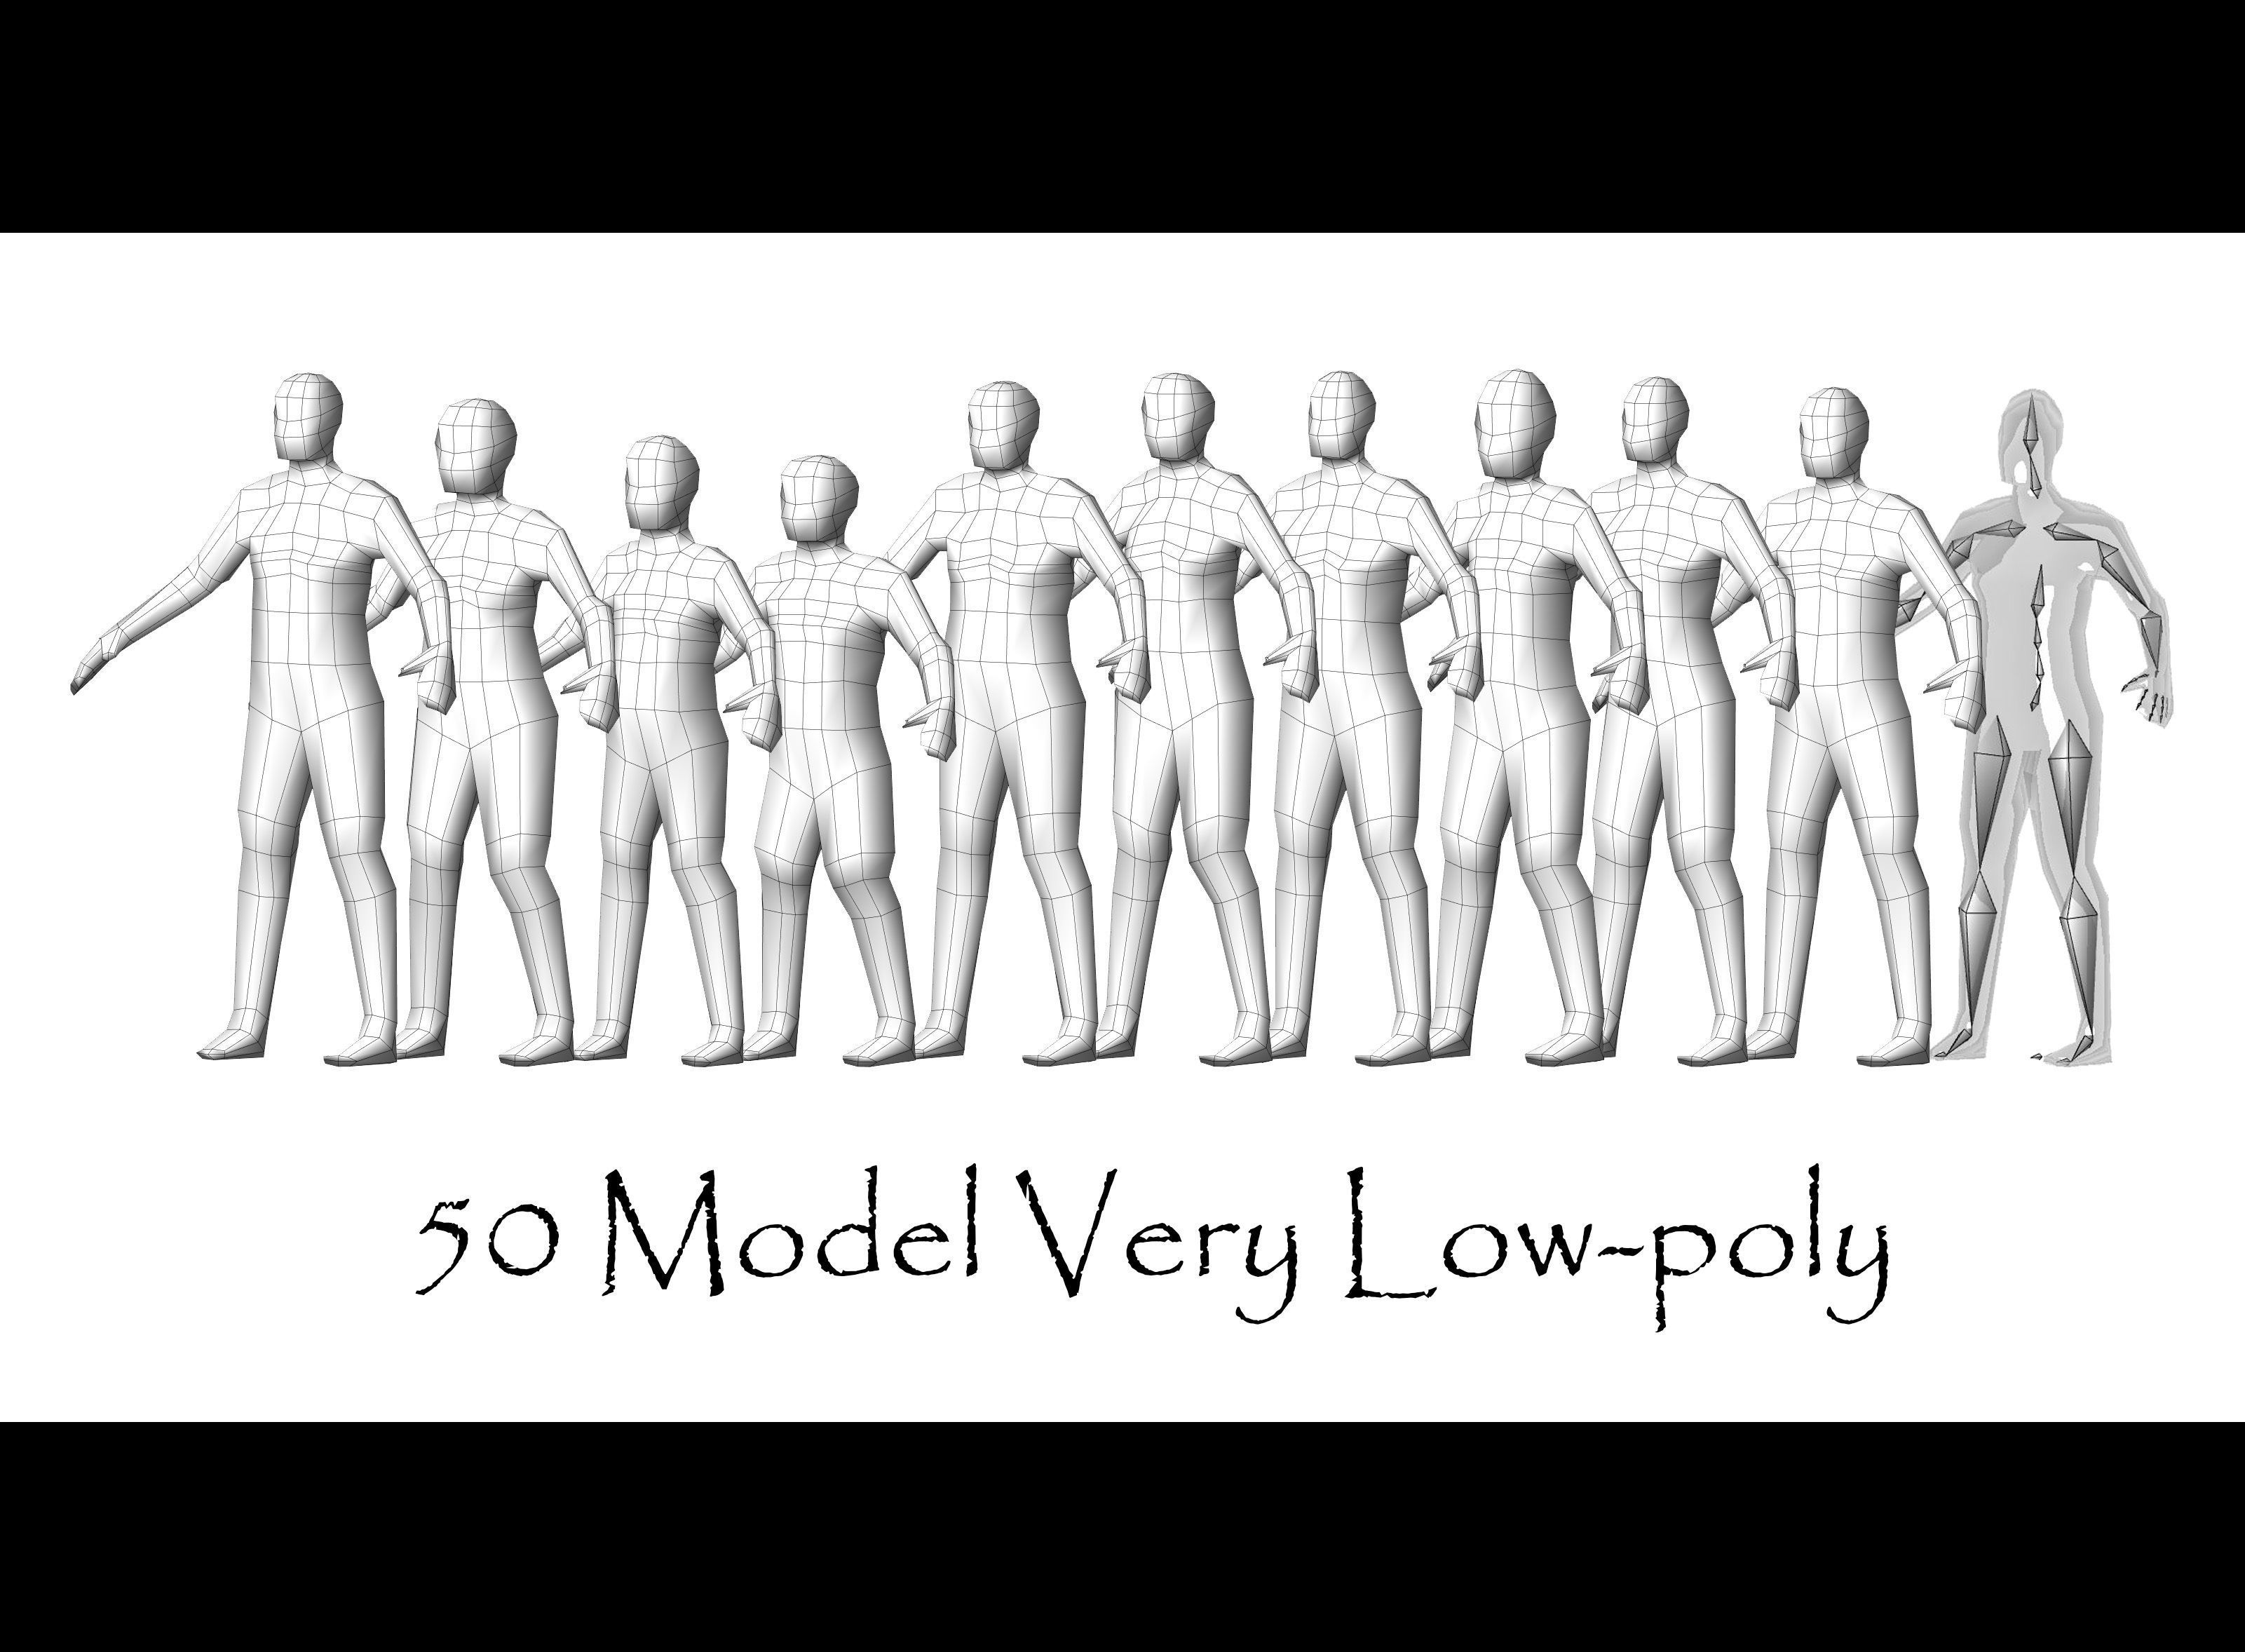 Collection Characters Very Low-poly - 50 Body Male and Female